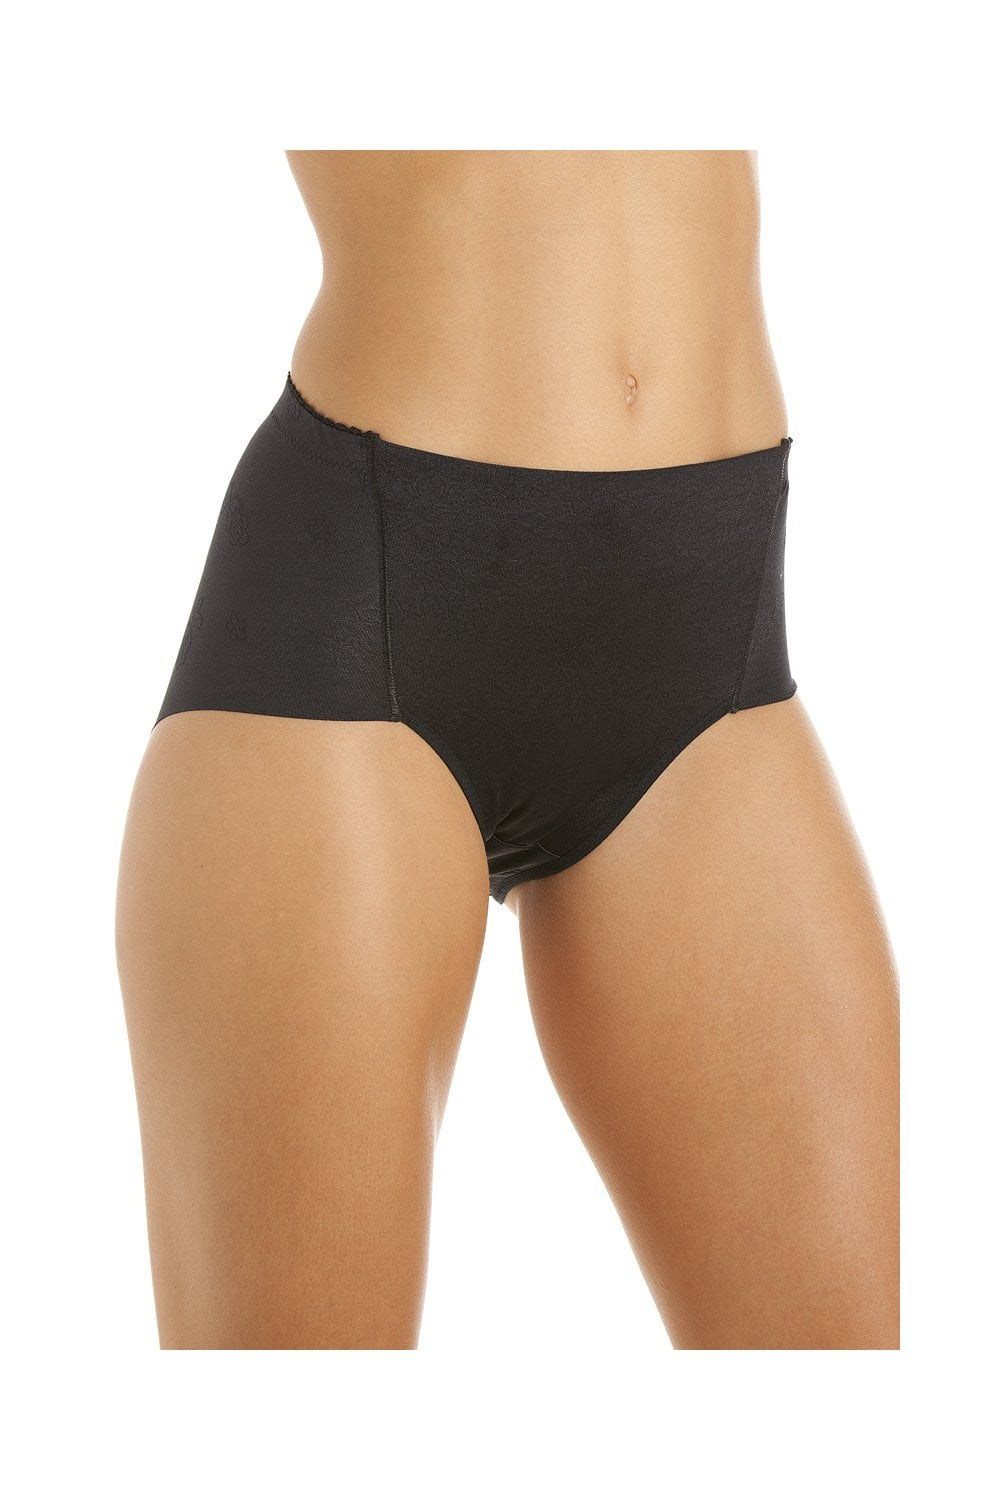 046d2e85ee421 Camille Womens Shapewear Control Black Deep Briefs - Camille from ...